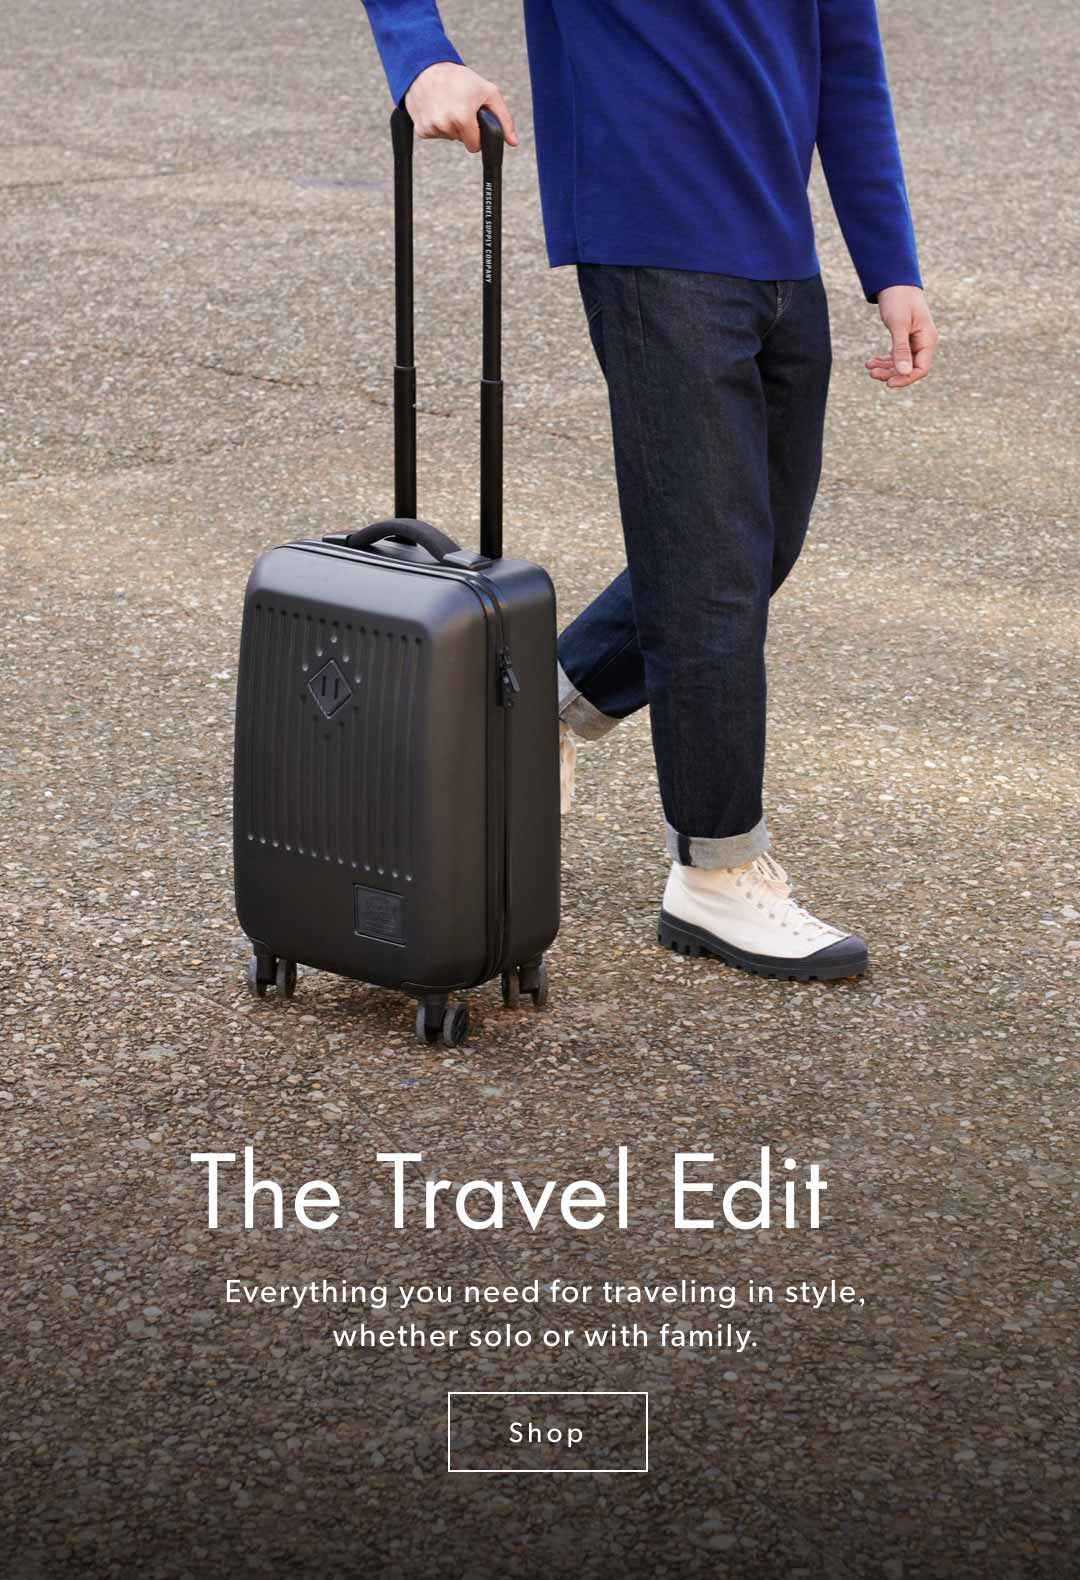 The Travel Edit